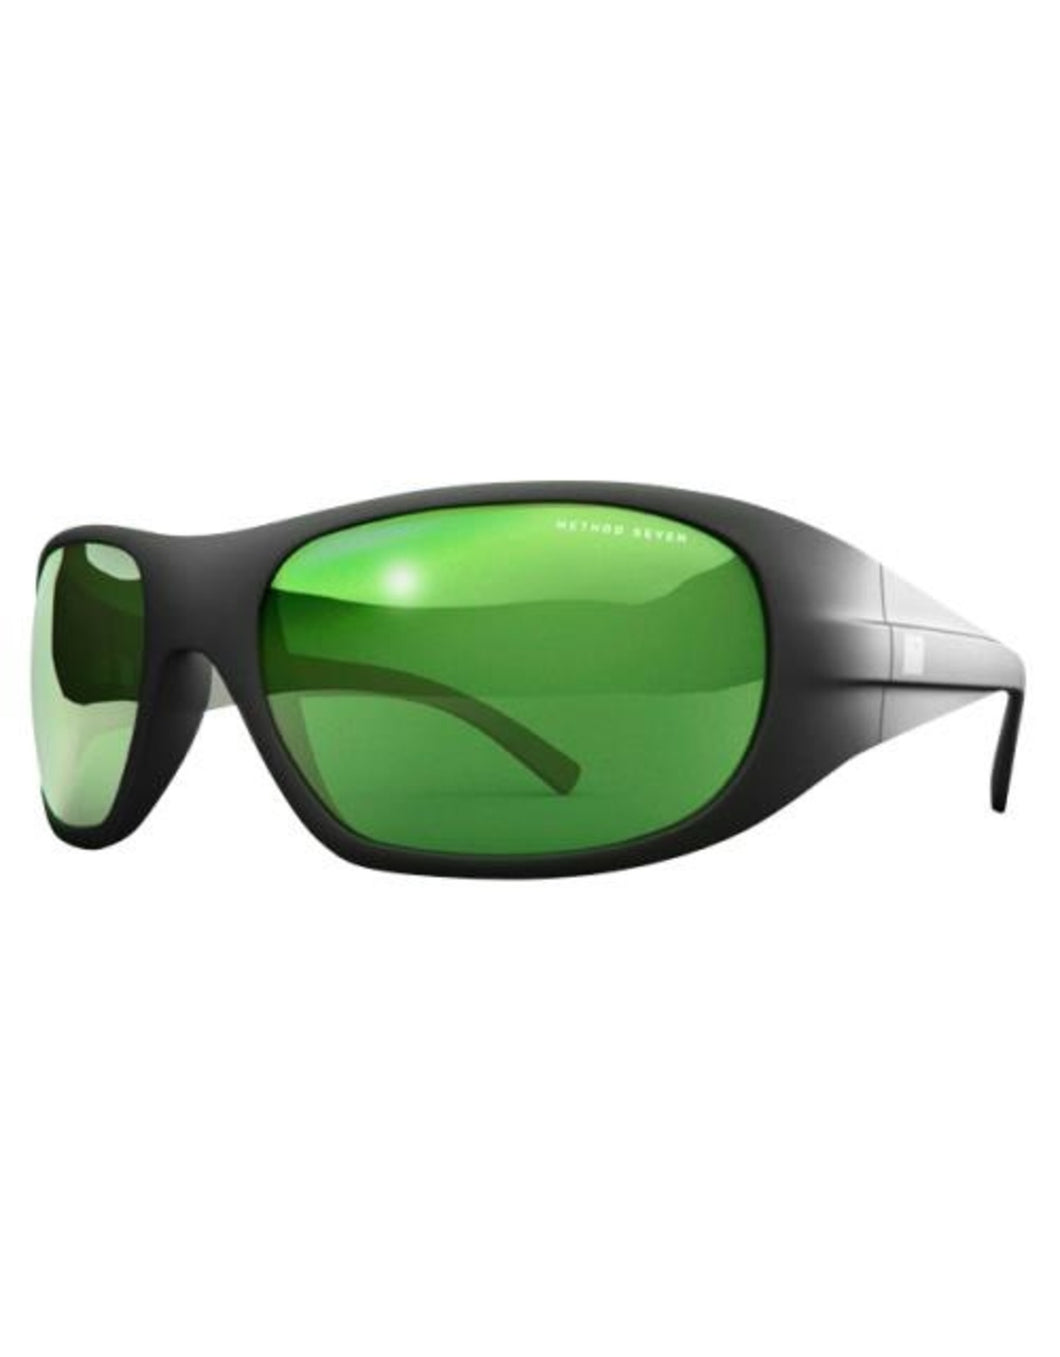 Method Seven - Operator LED Glasses